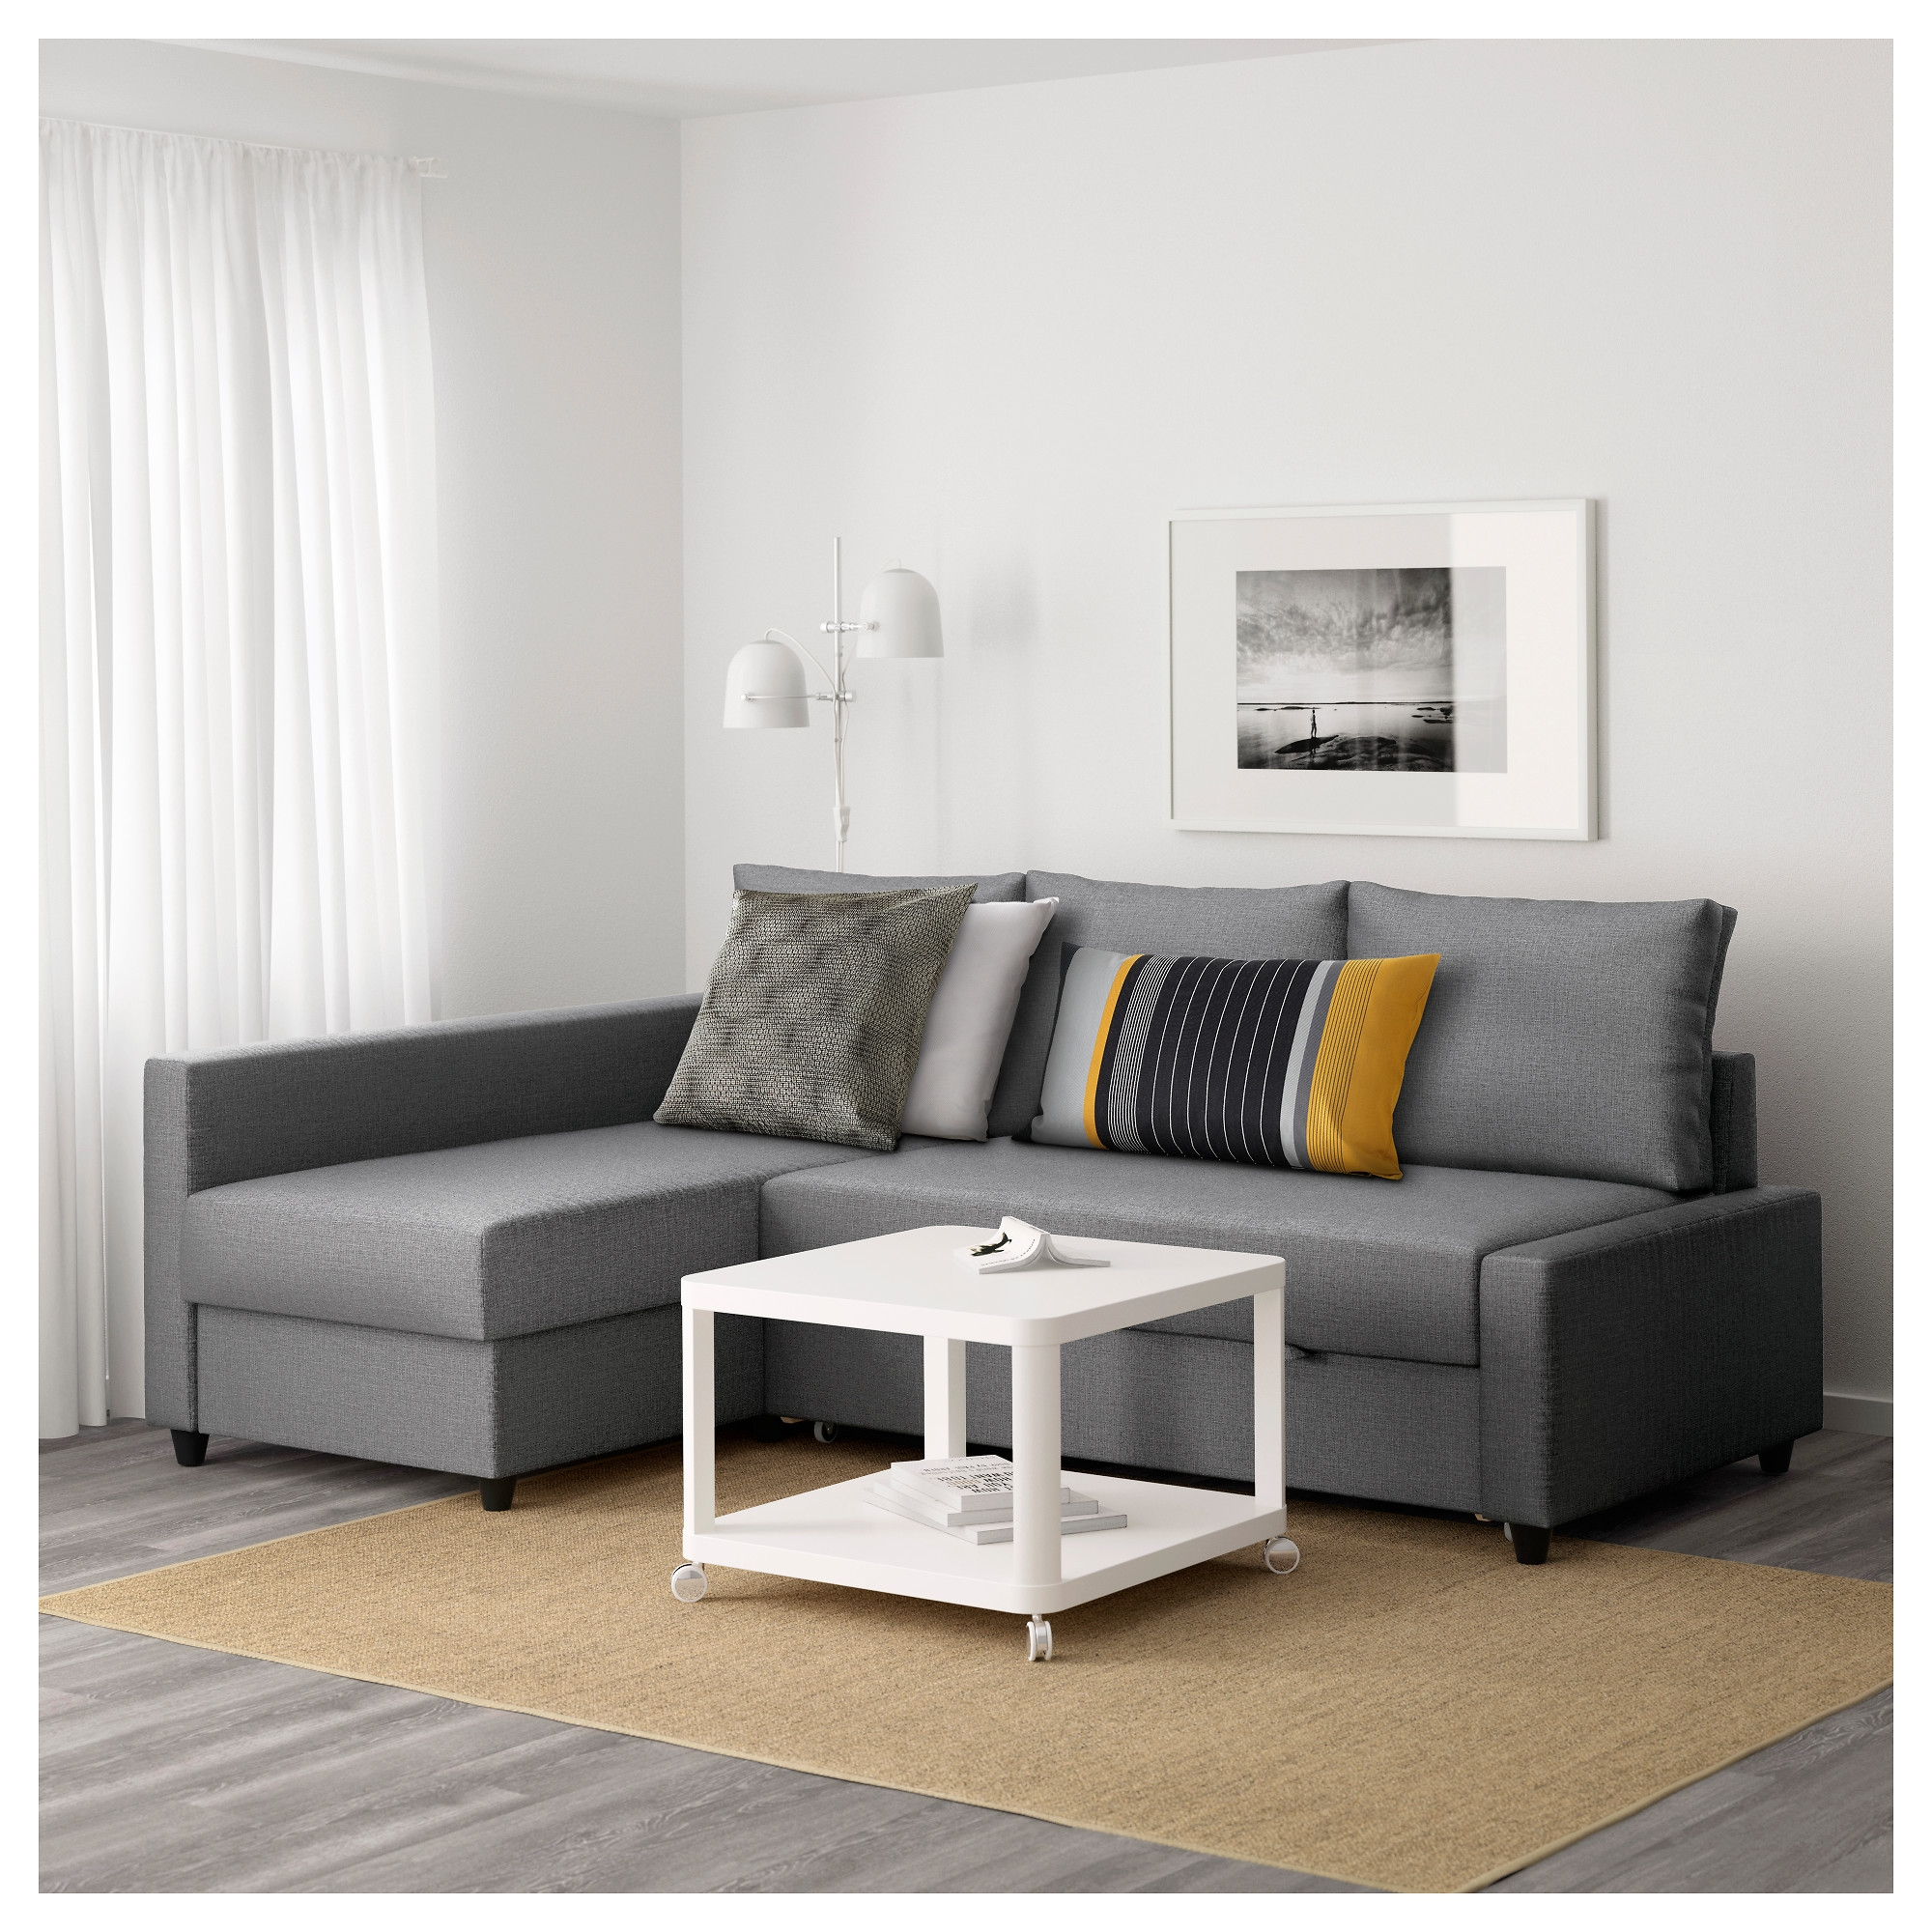 Friheten Corner Sofa Bed With Storage Skiftebo Dark Grey Ikea Throughout Corner Couch Bed (Image 10 of 15)